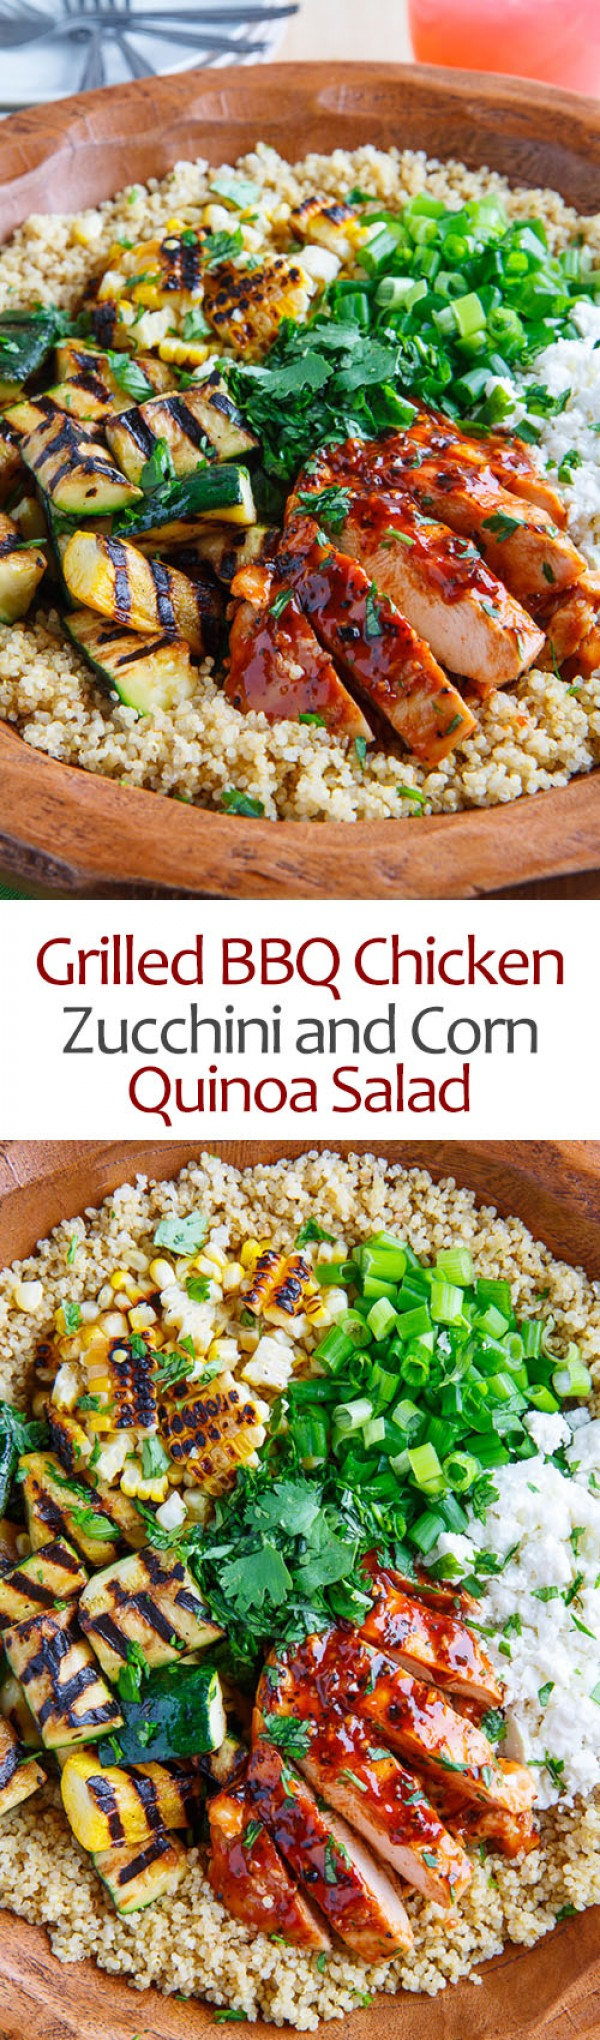 Get the recipe Grilled BBQ Chicken Quinoa Salad @recipes_to_go